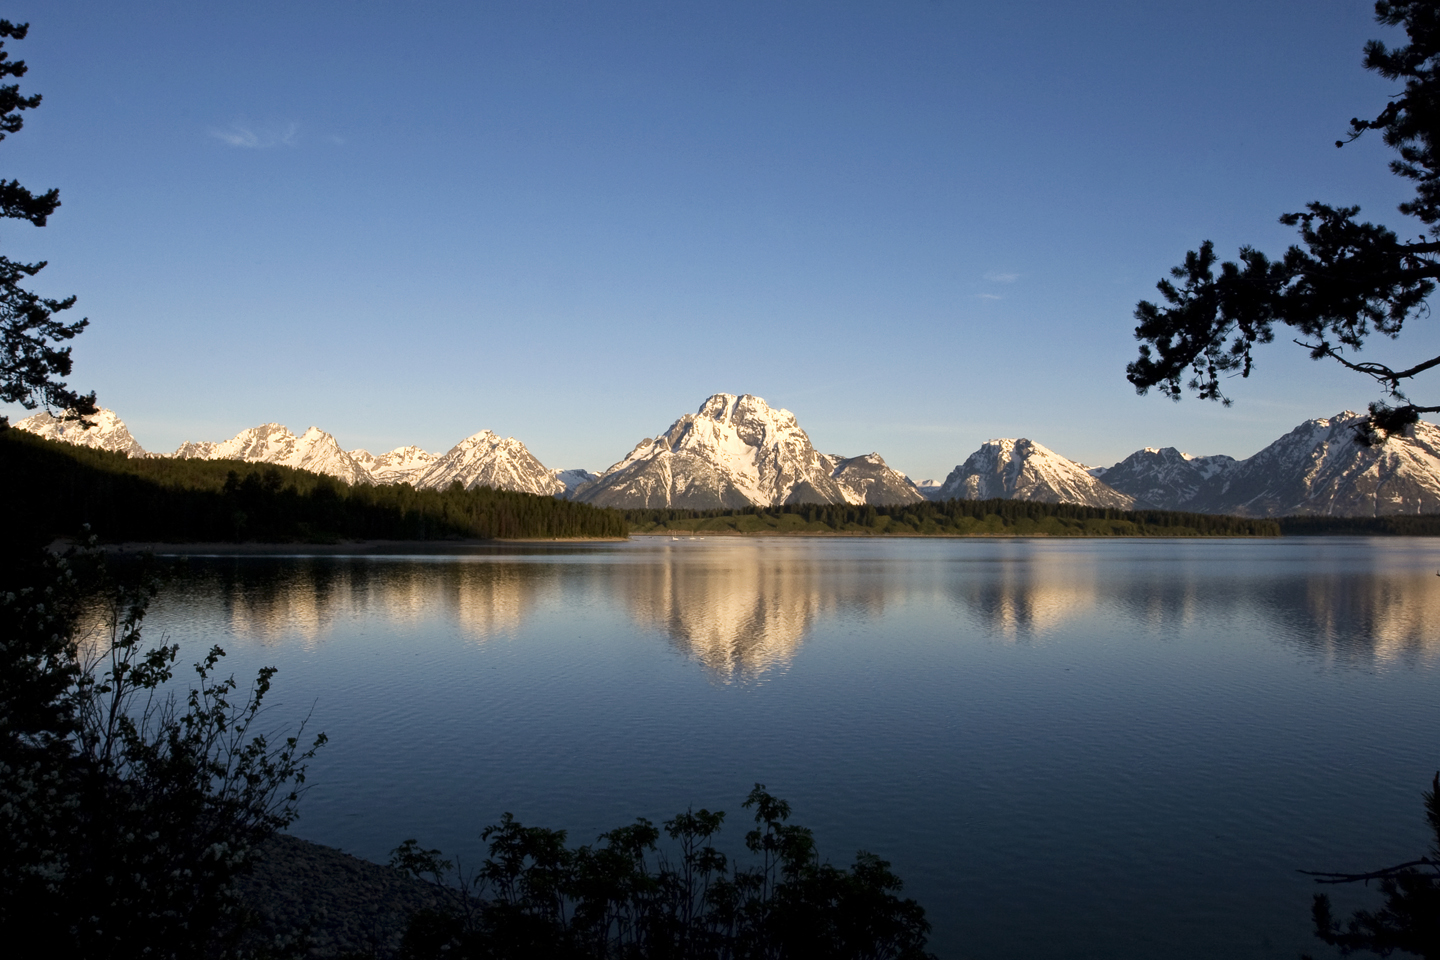 Grand-Tetons-View-Lake-Reflection